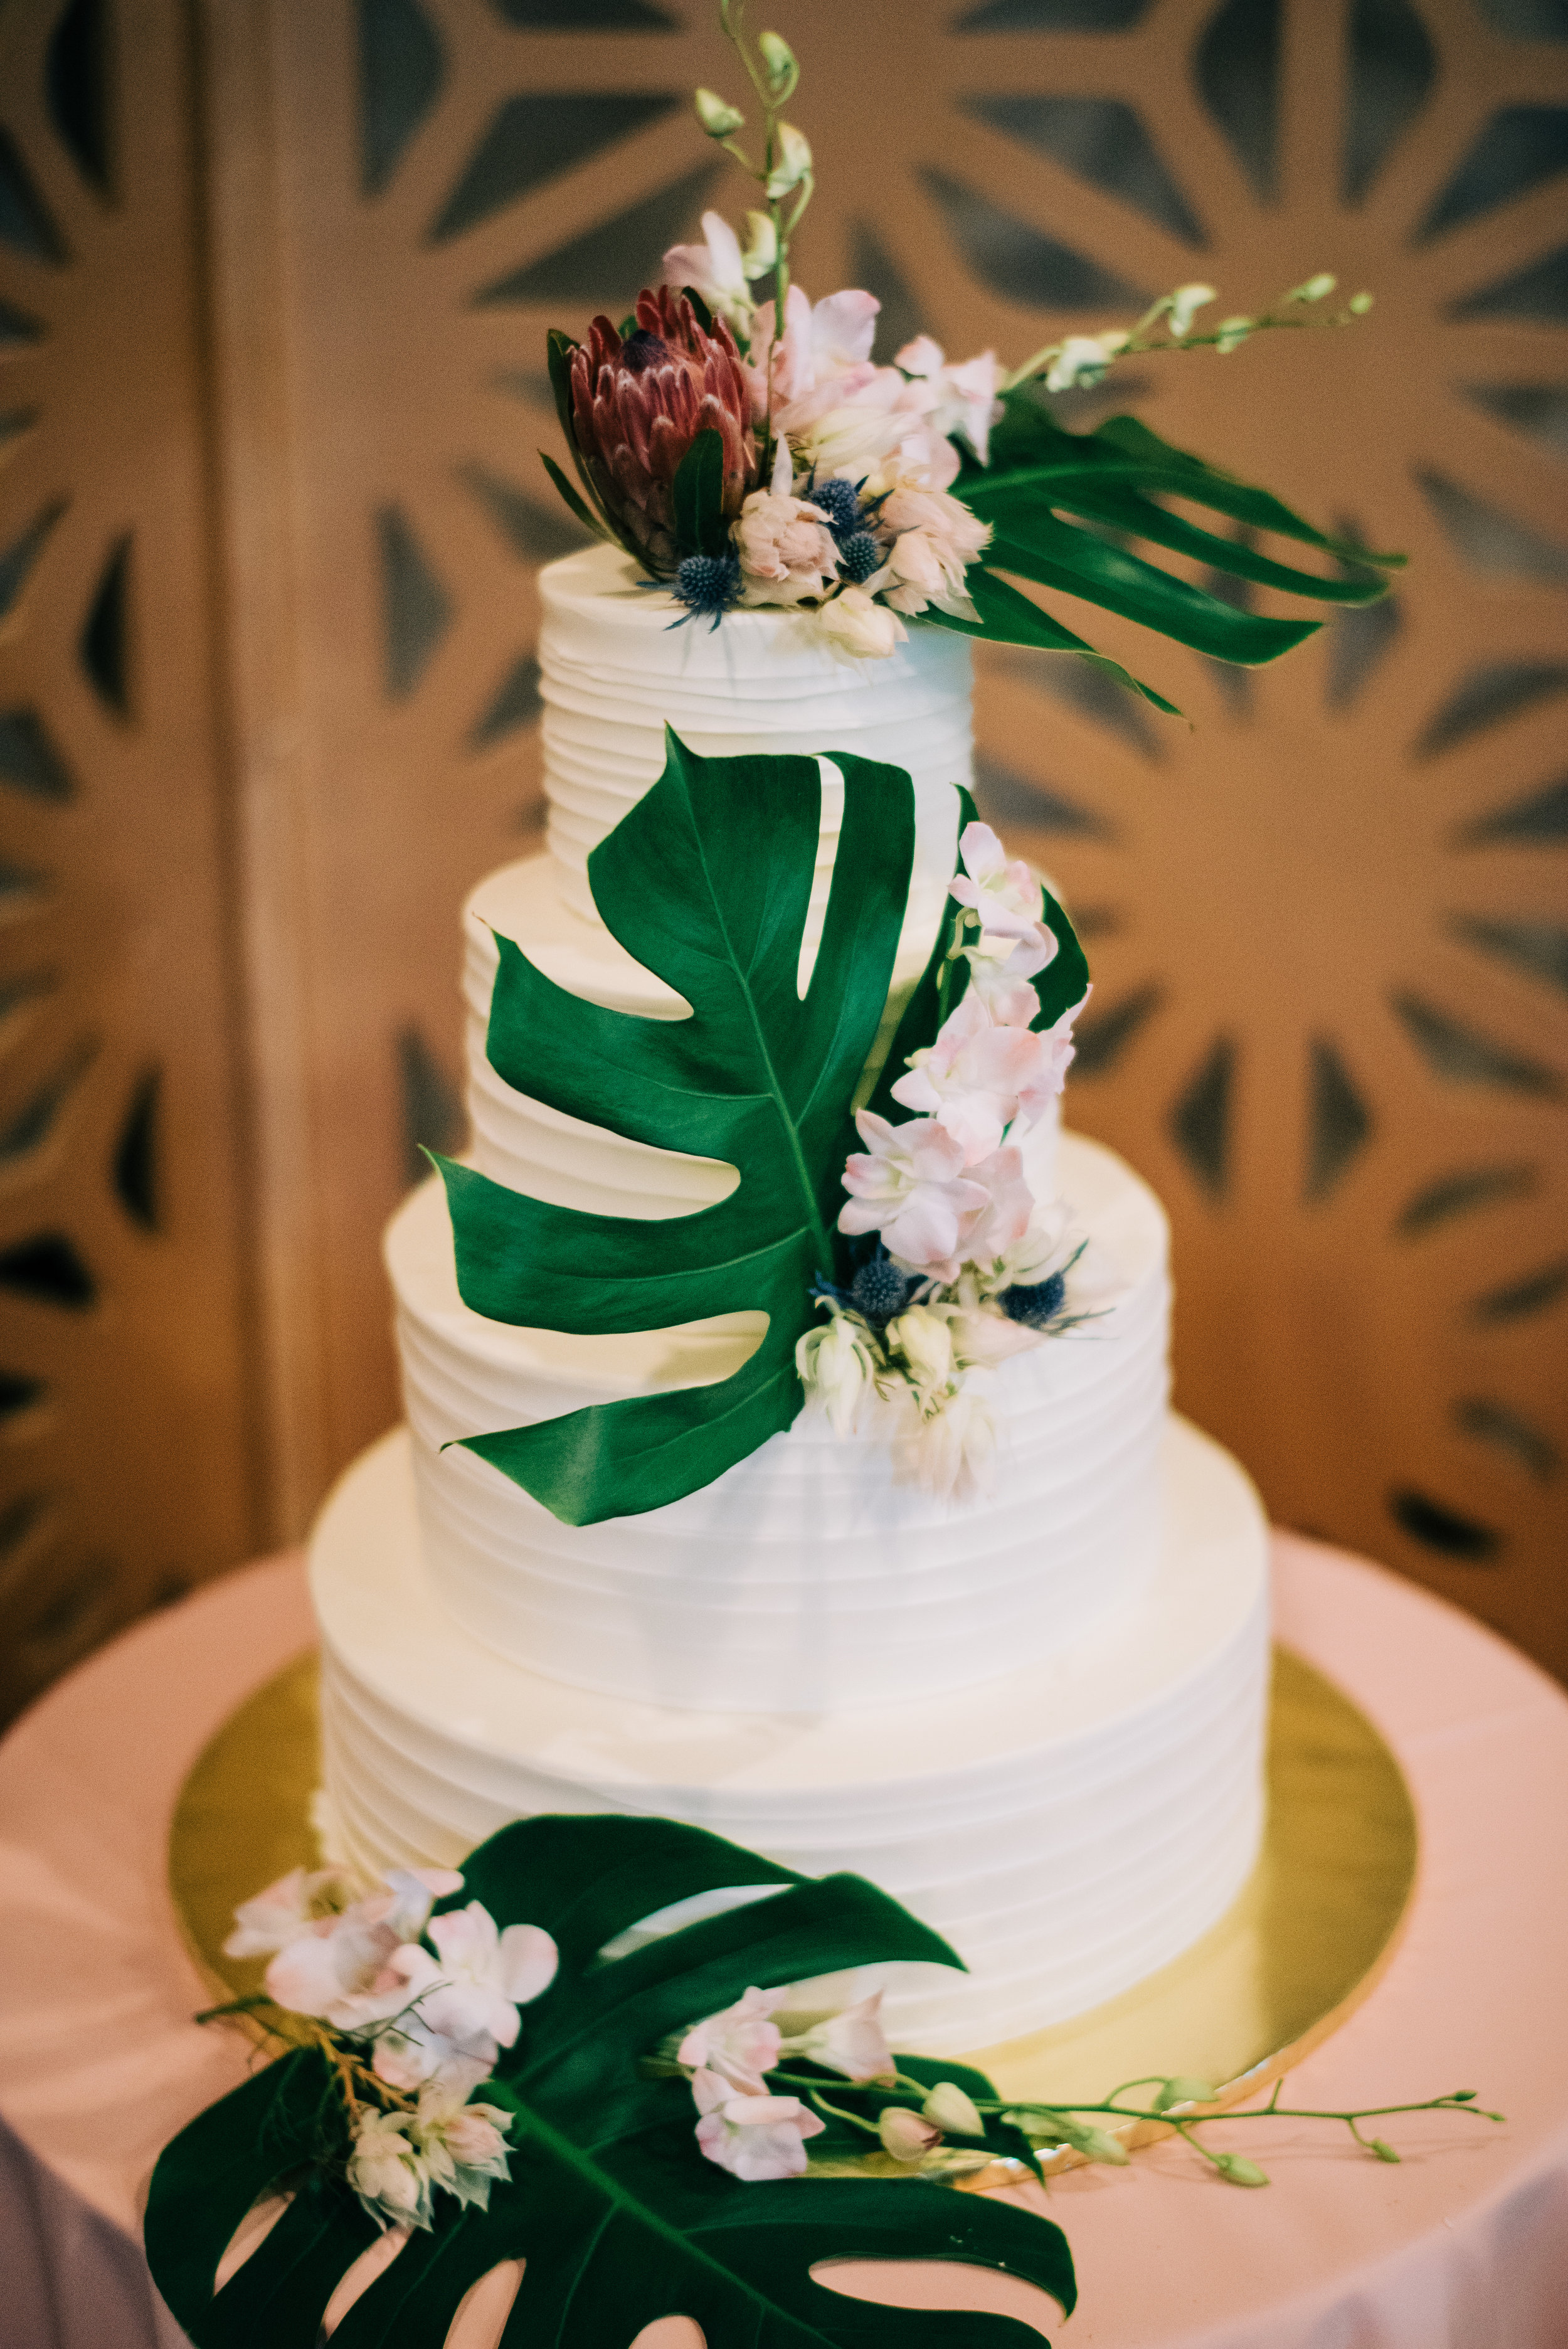 30 wedding cake white wedding cake three tier simple wedding cake tropical flower wedding cake tropical leaves protea orchid cake Life Design Events photos by Josh Snyder Photography.jpg